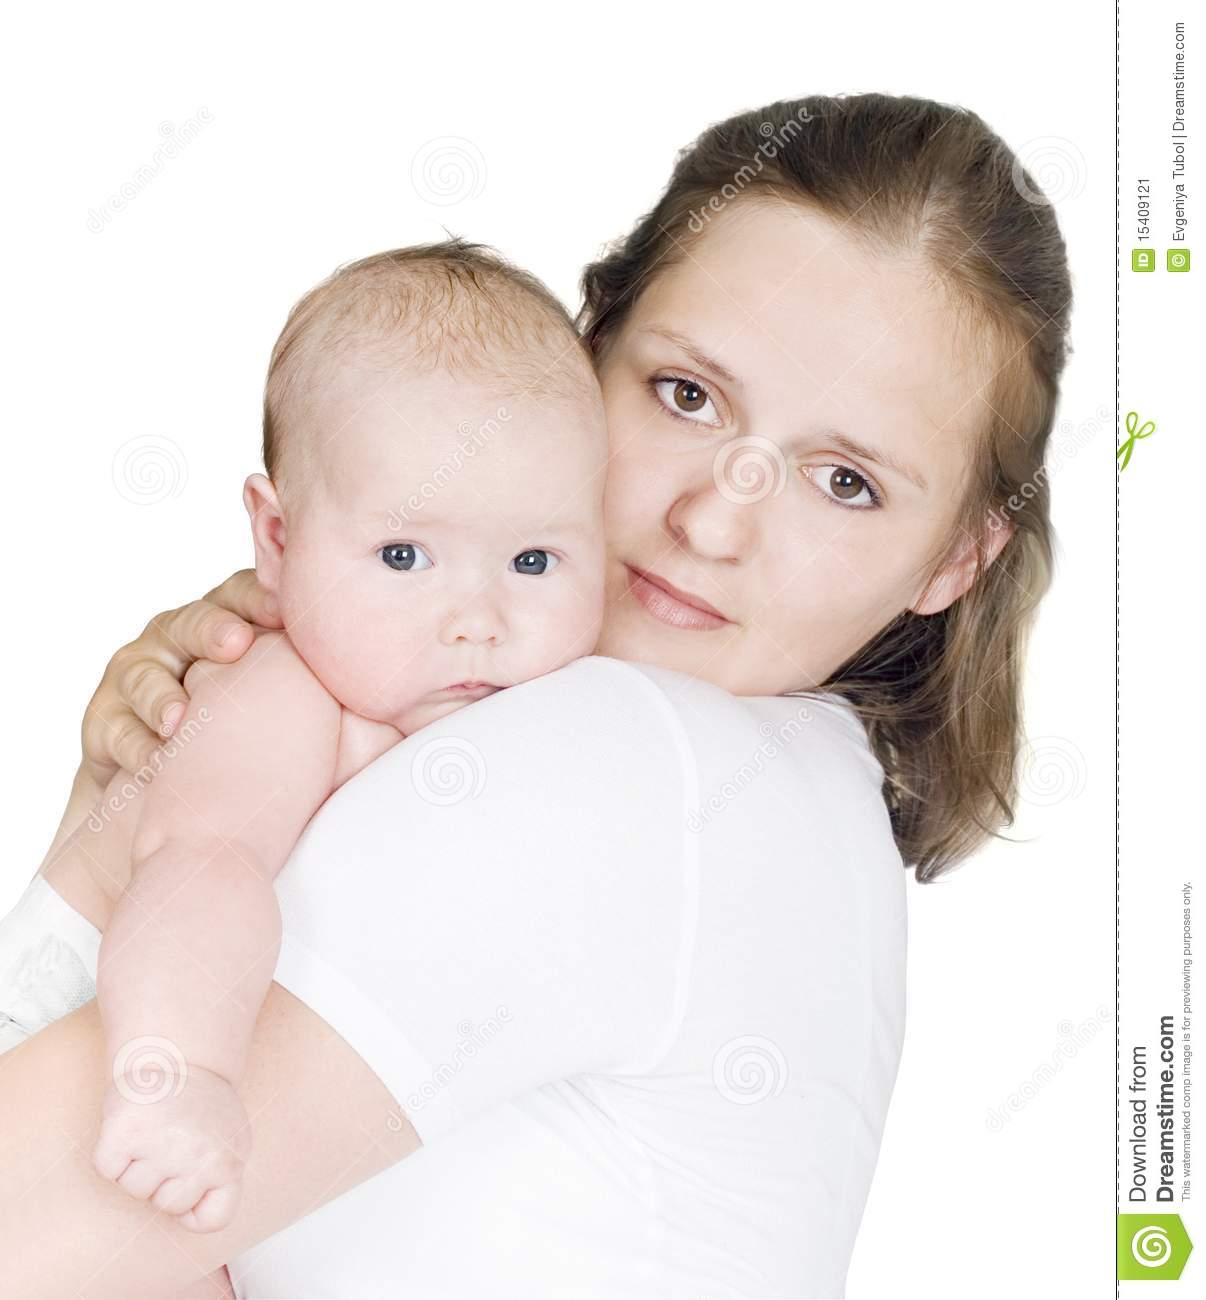 Young Woman Holding A Child Stock Image - Image: 15409121